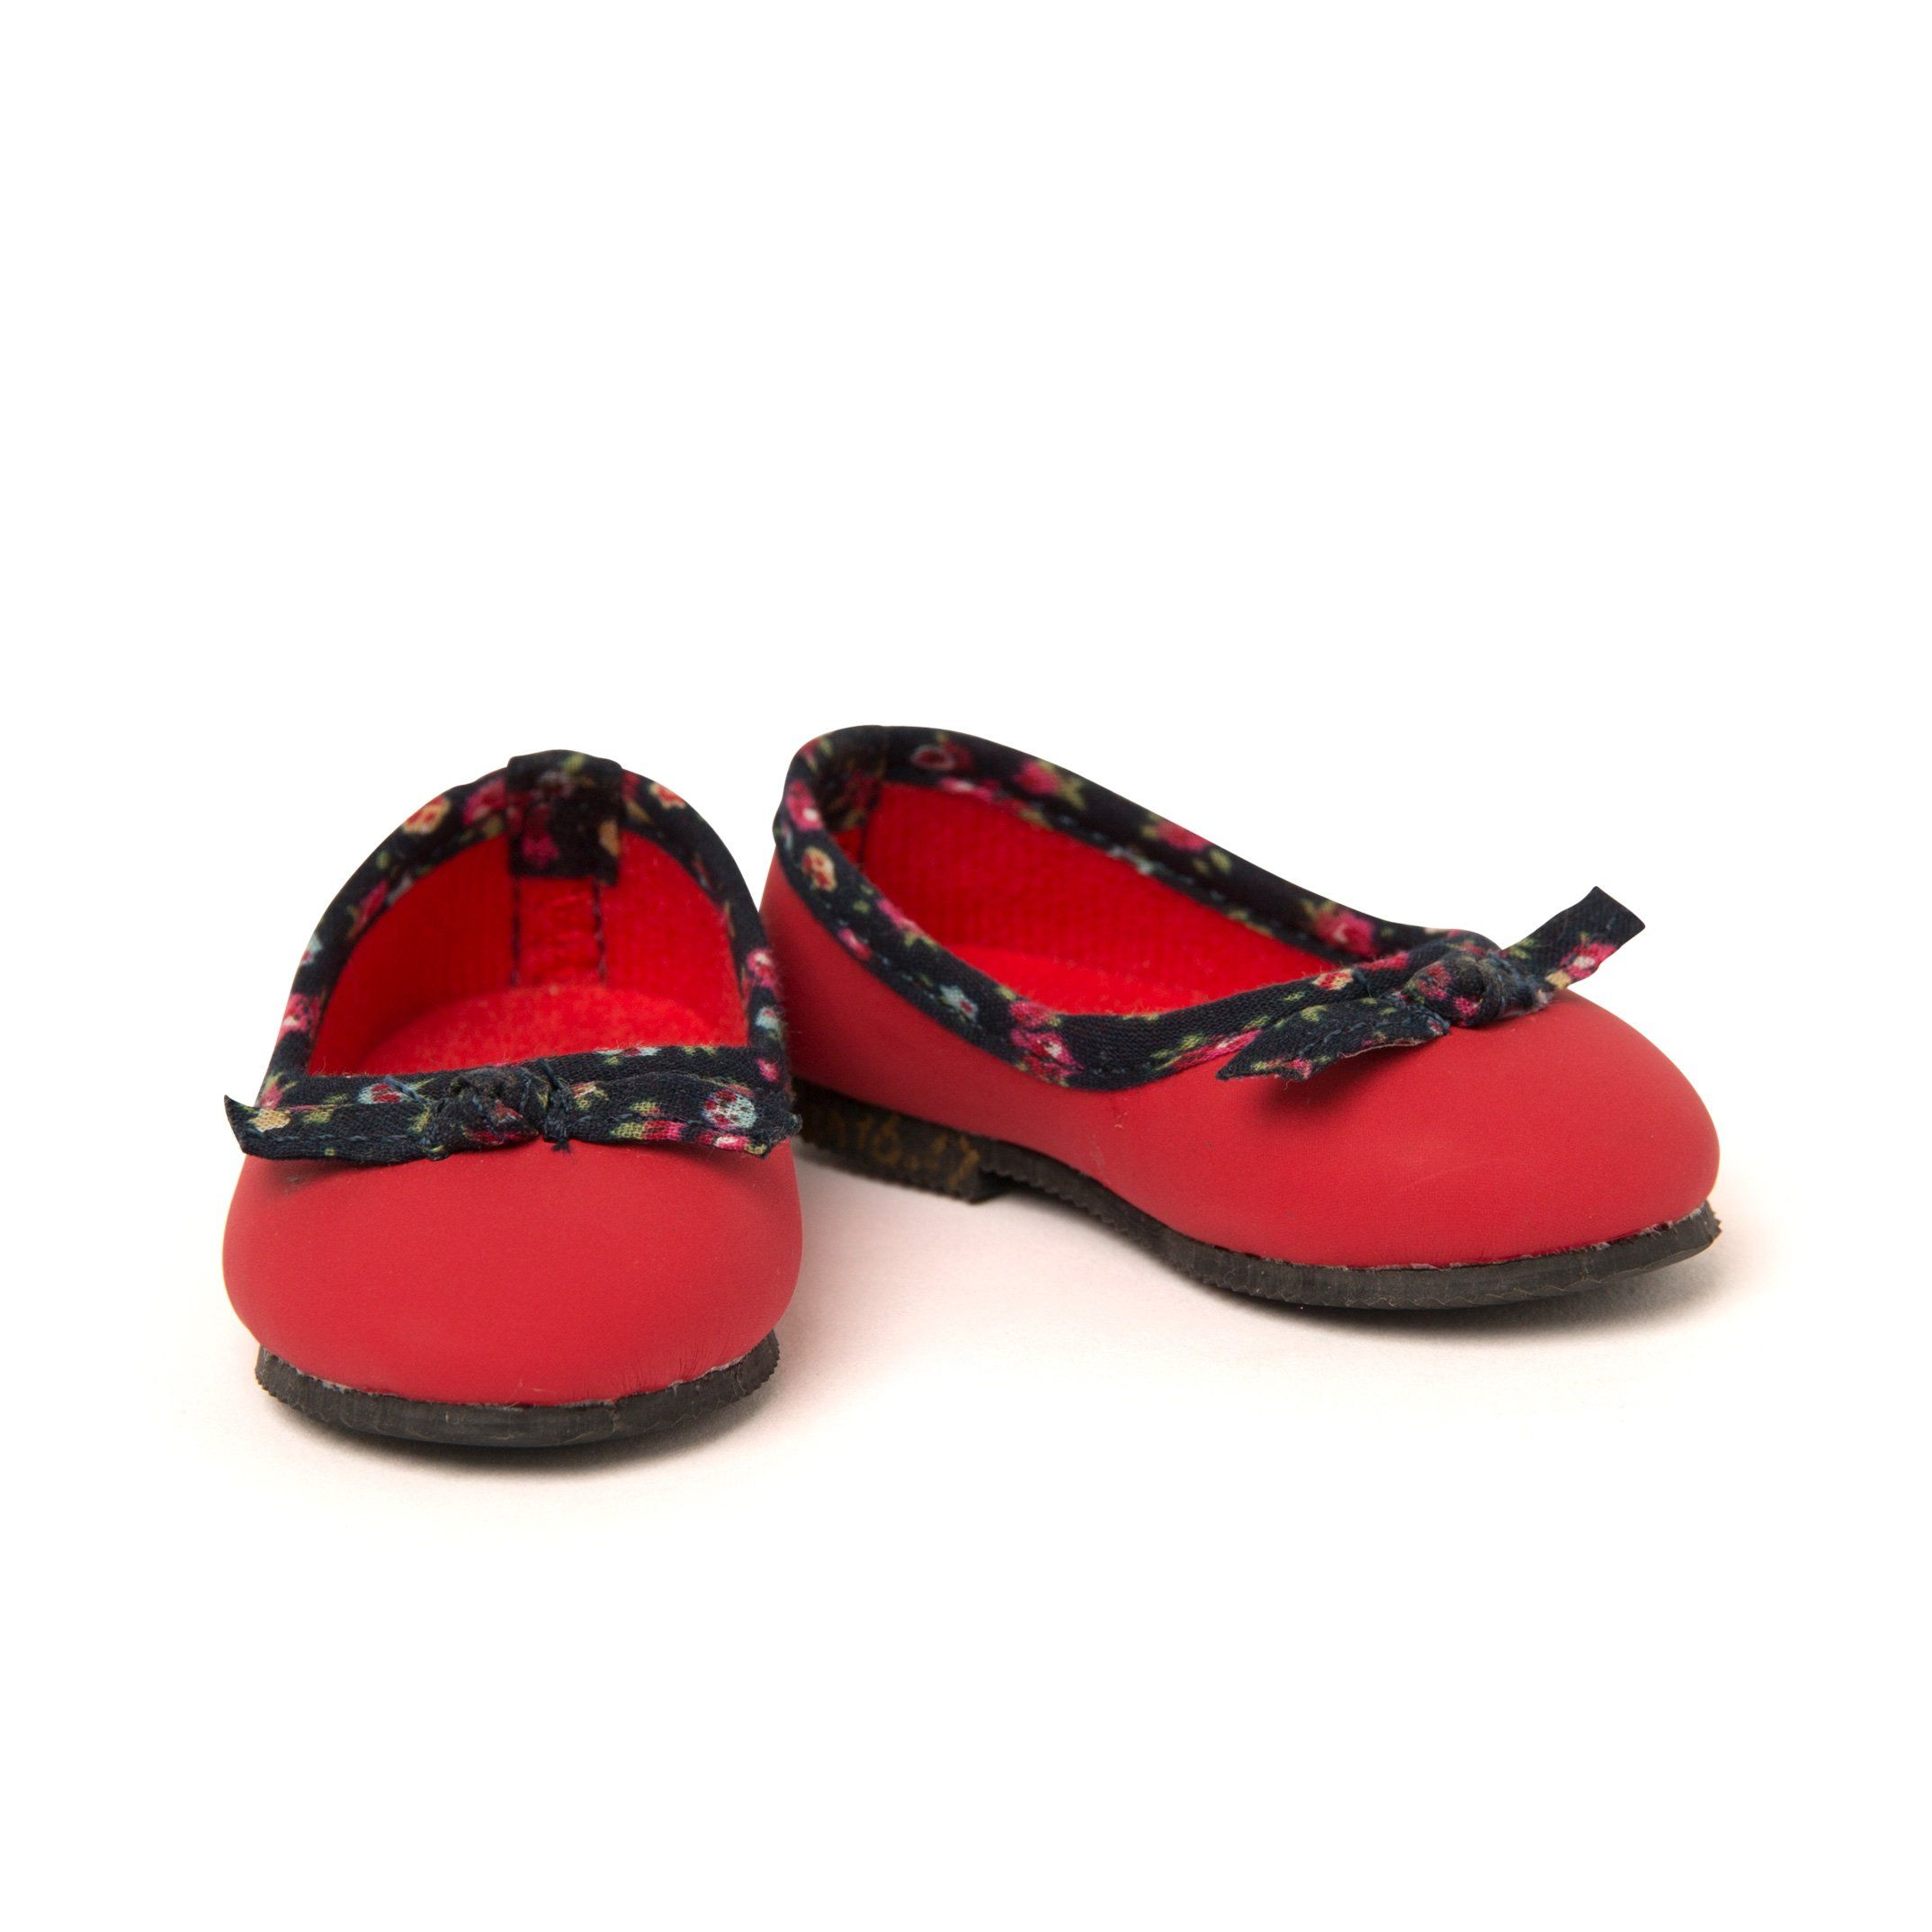 Red flats fits all 18 inch dolls. Maplelea has great footwear for dolls.